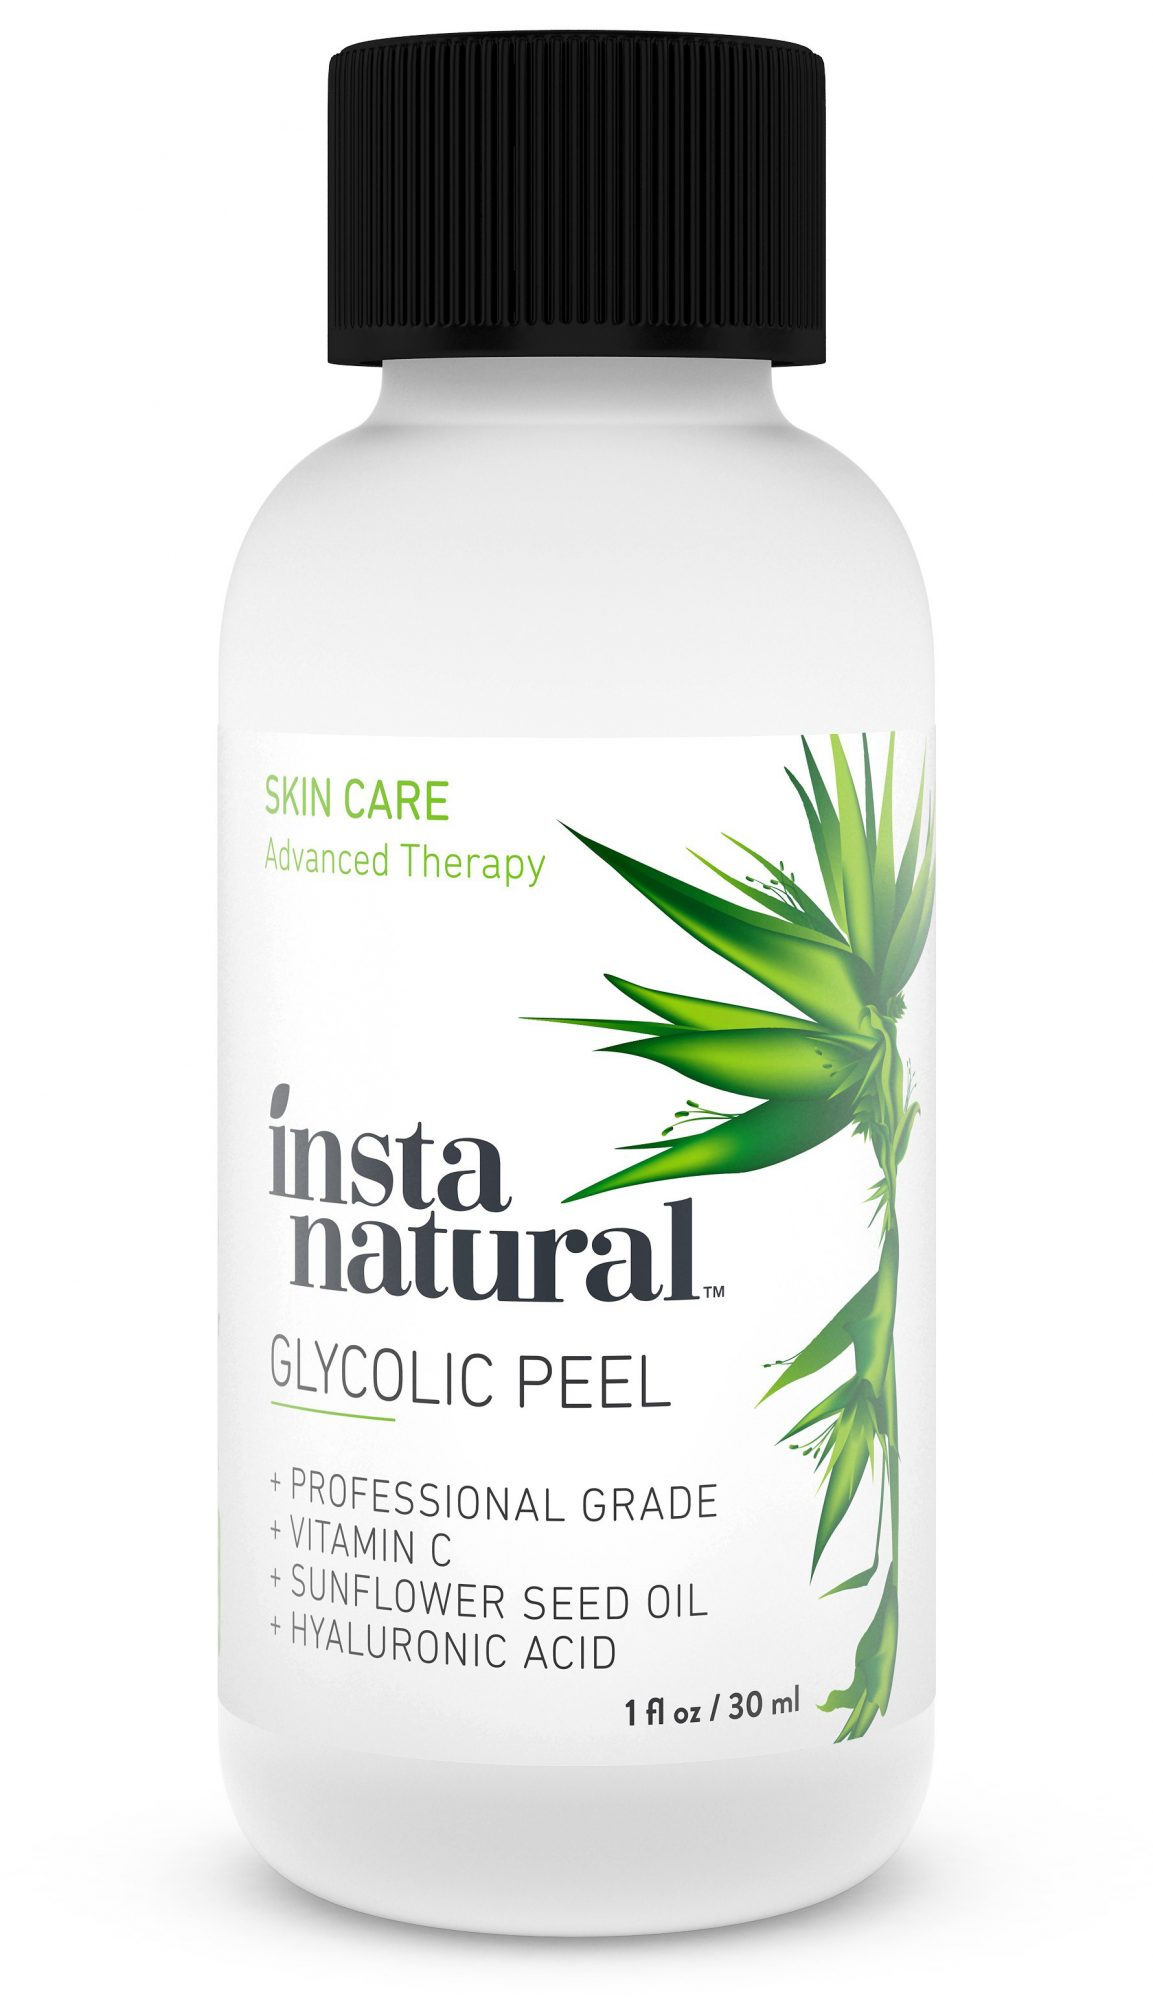 Best Face Masks and Chemical Peels: InstaNatural Glycolic Peel With Vitamin C, Sunflower Seed Oil, Hyaluronic Acid